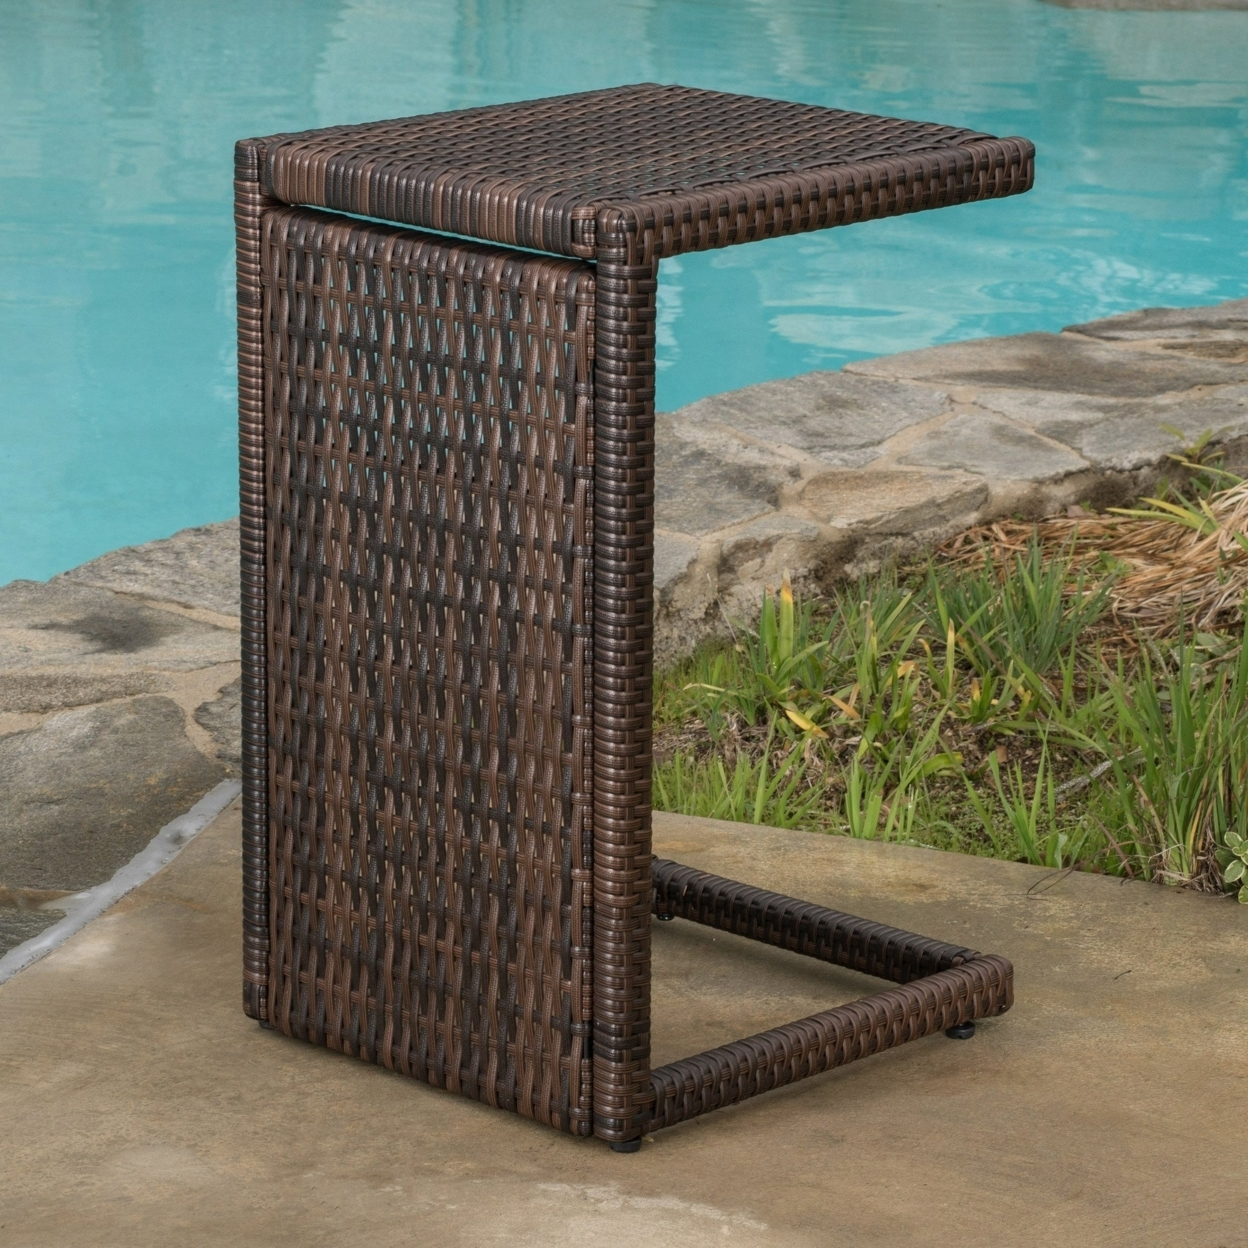 Lakeport Wicker Chaise Lounge with Wicker Side Table